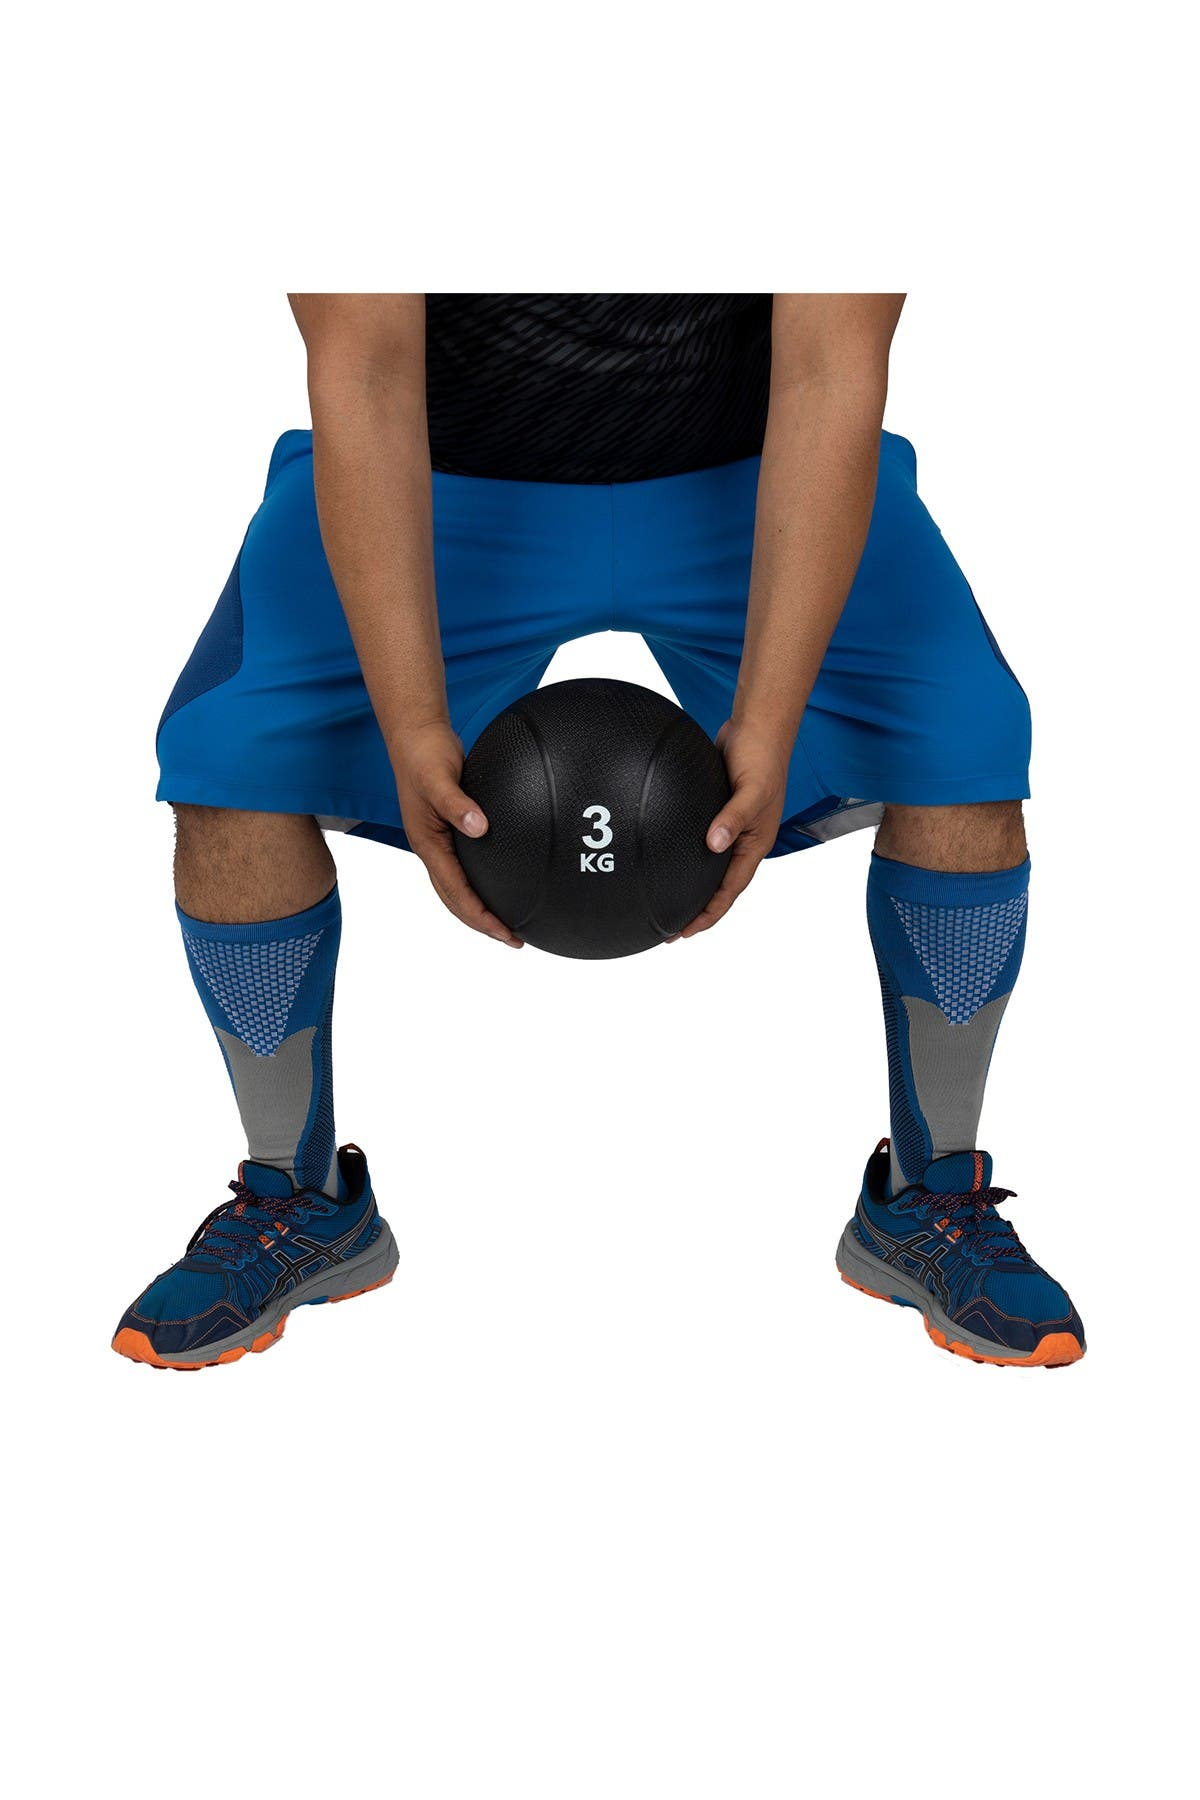 Image of MIND READER Core Workout Medicine Ball - 6.6 lb